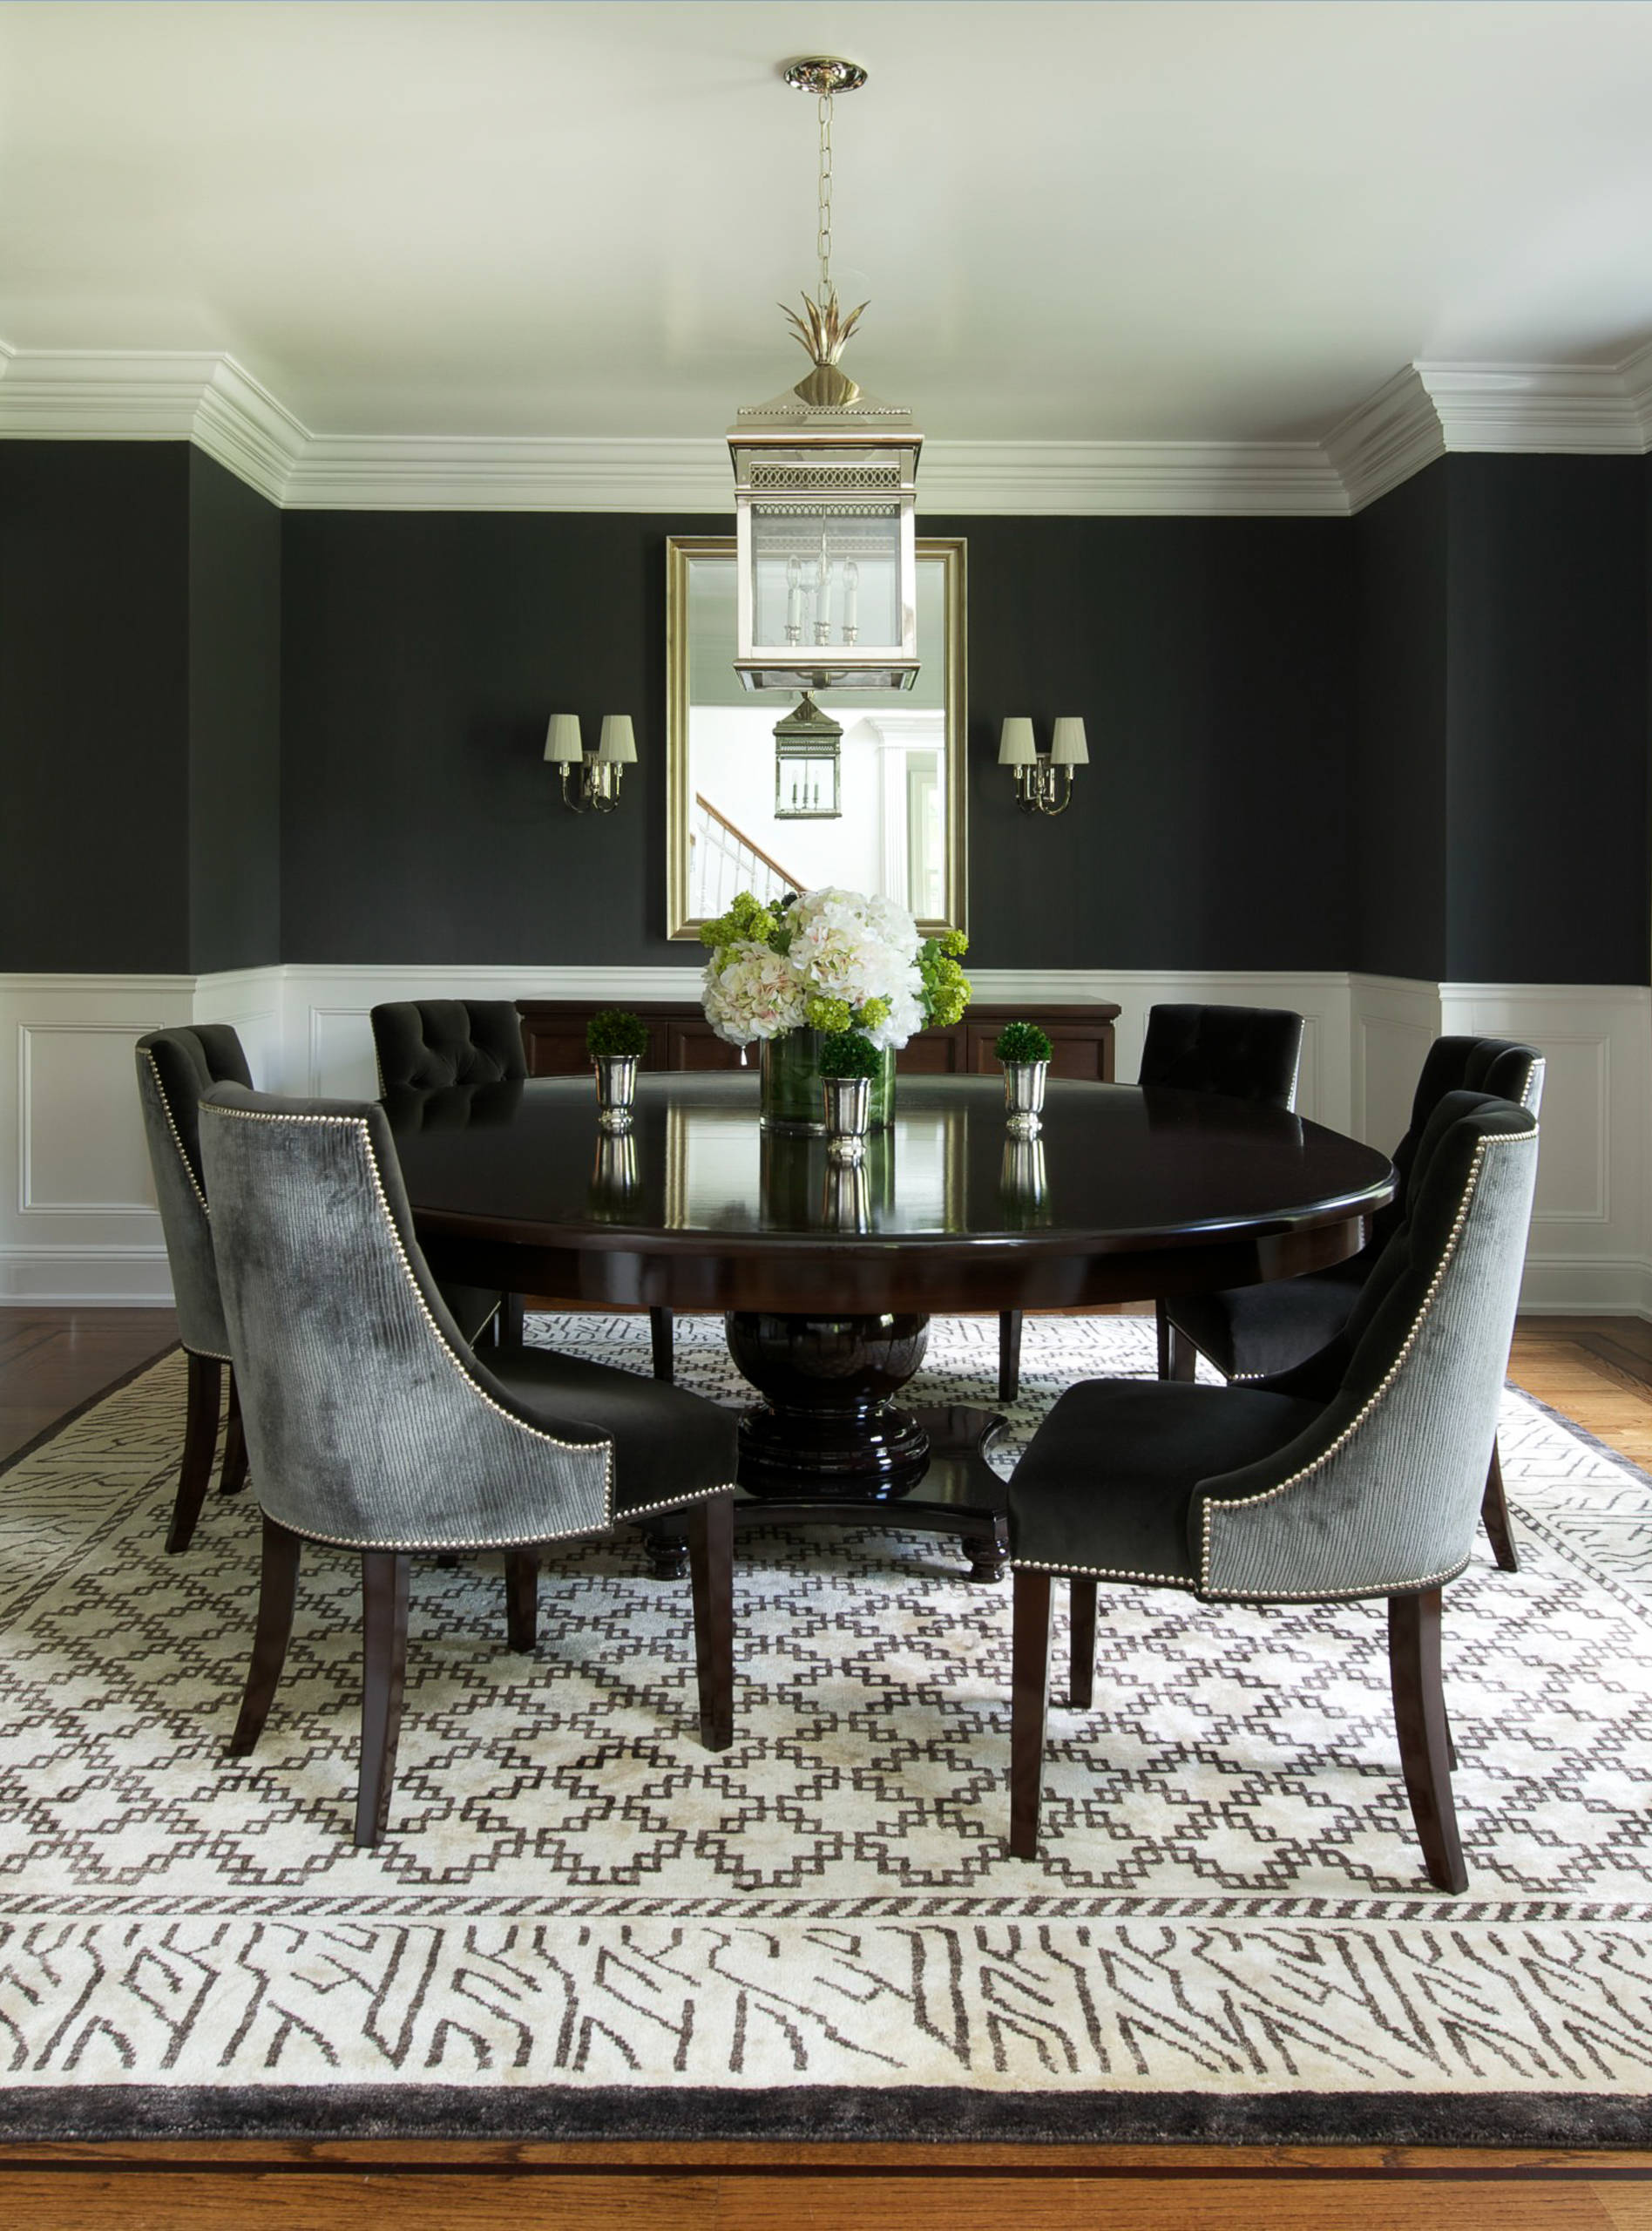 Round Dining Table To Decorate Your Home: images of modern dining rooms